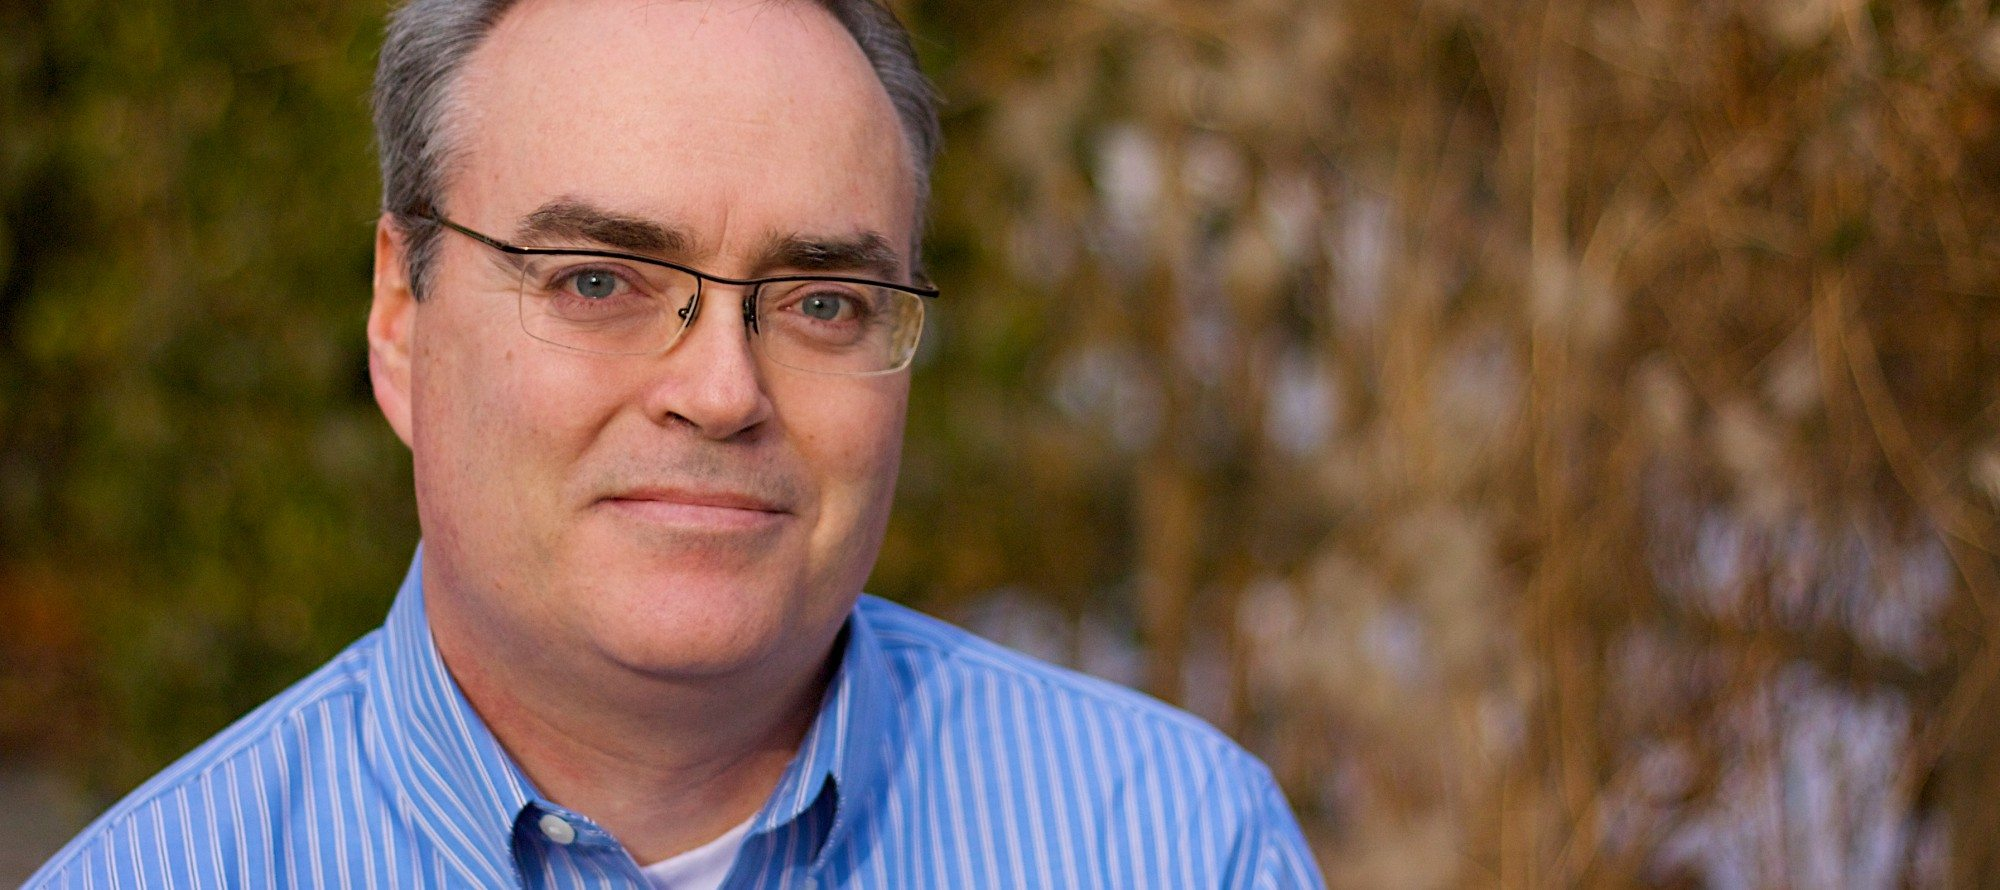 THE ARTFUL BLOGGER: Writer Terry Fallis chats about his (very funny) new book and the input he got from former astronaut Marc Garneau